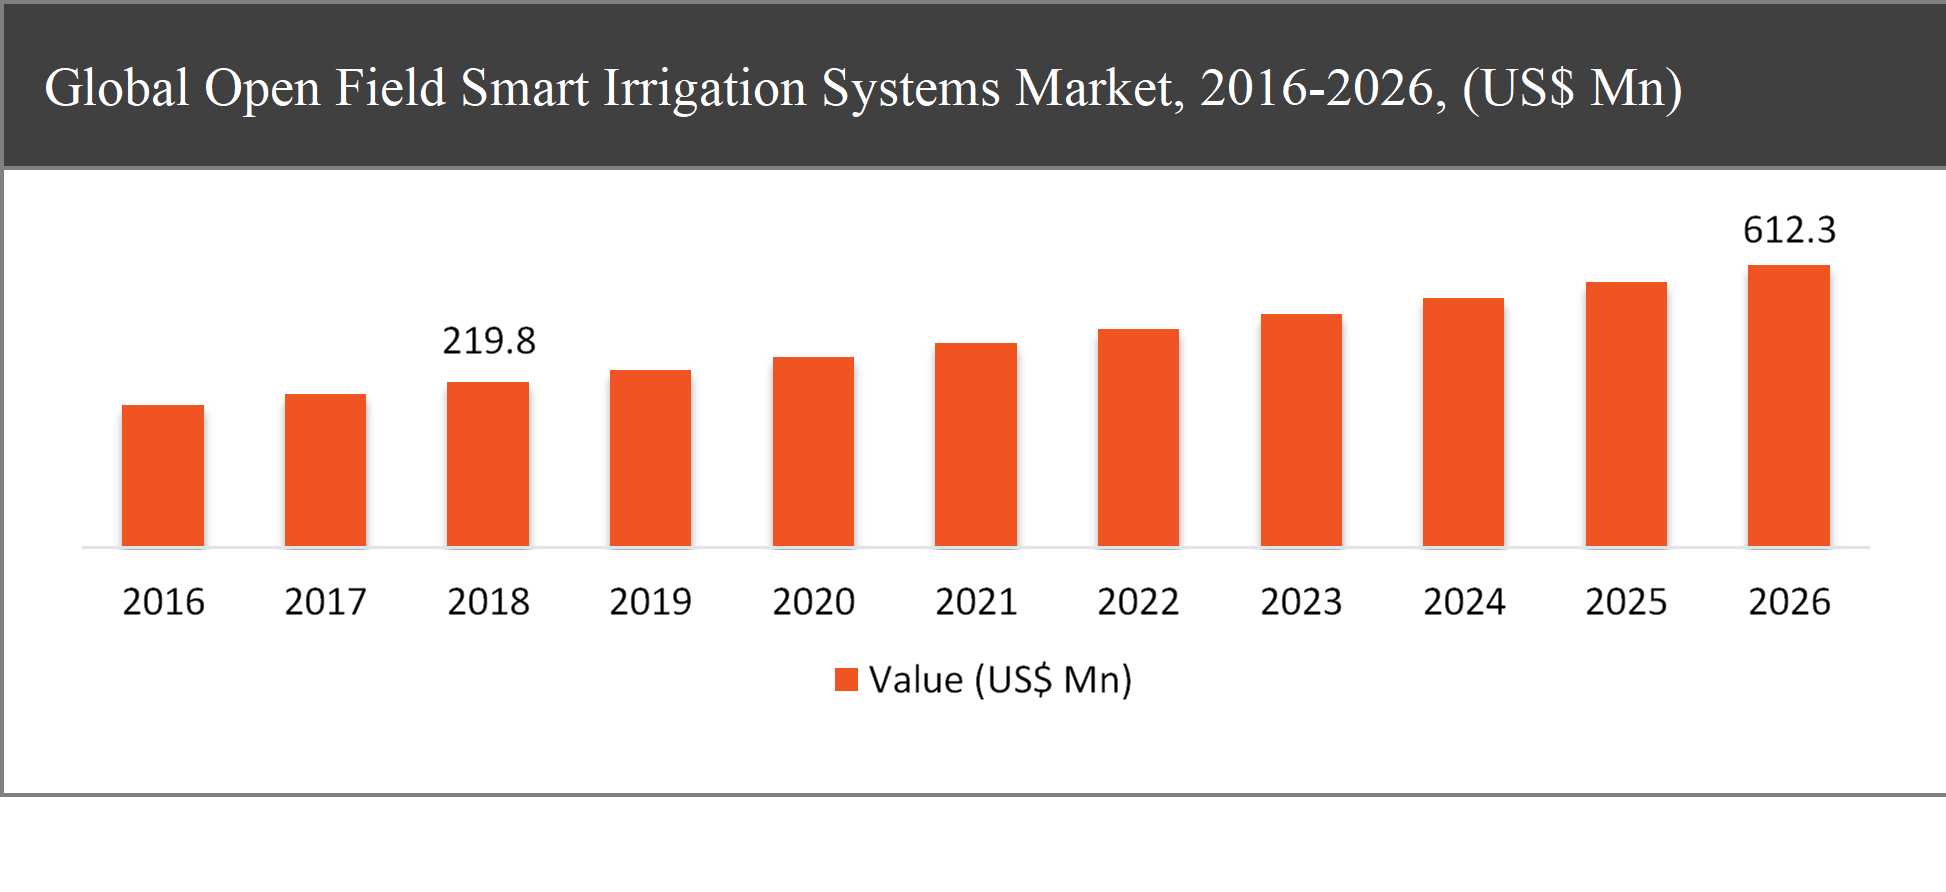 Global Open Field Smart Irrigation Systems Market